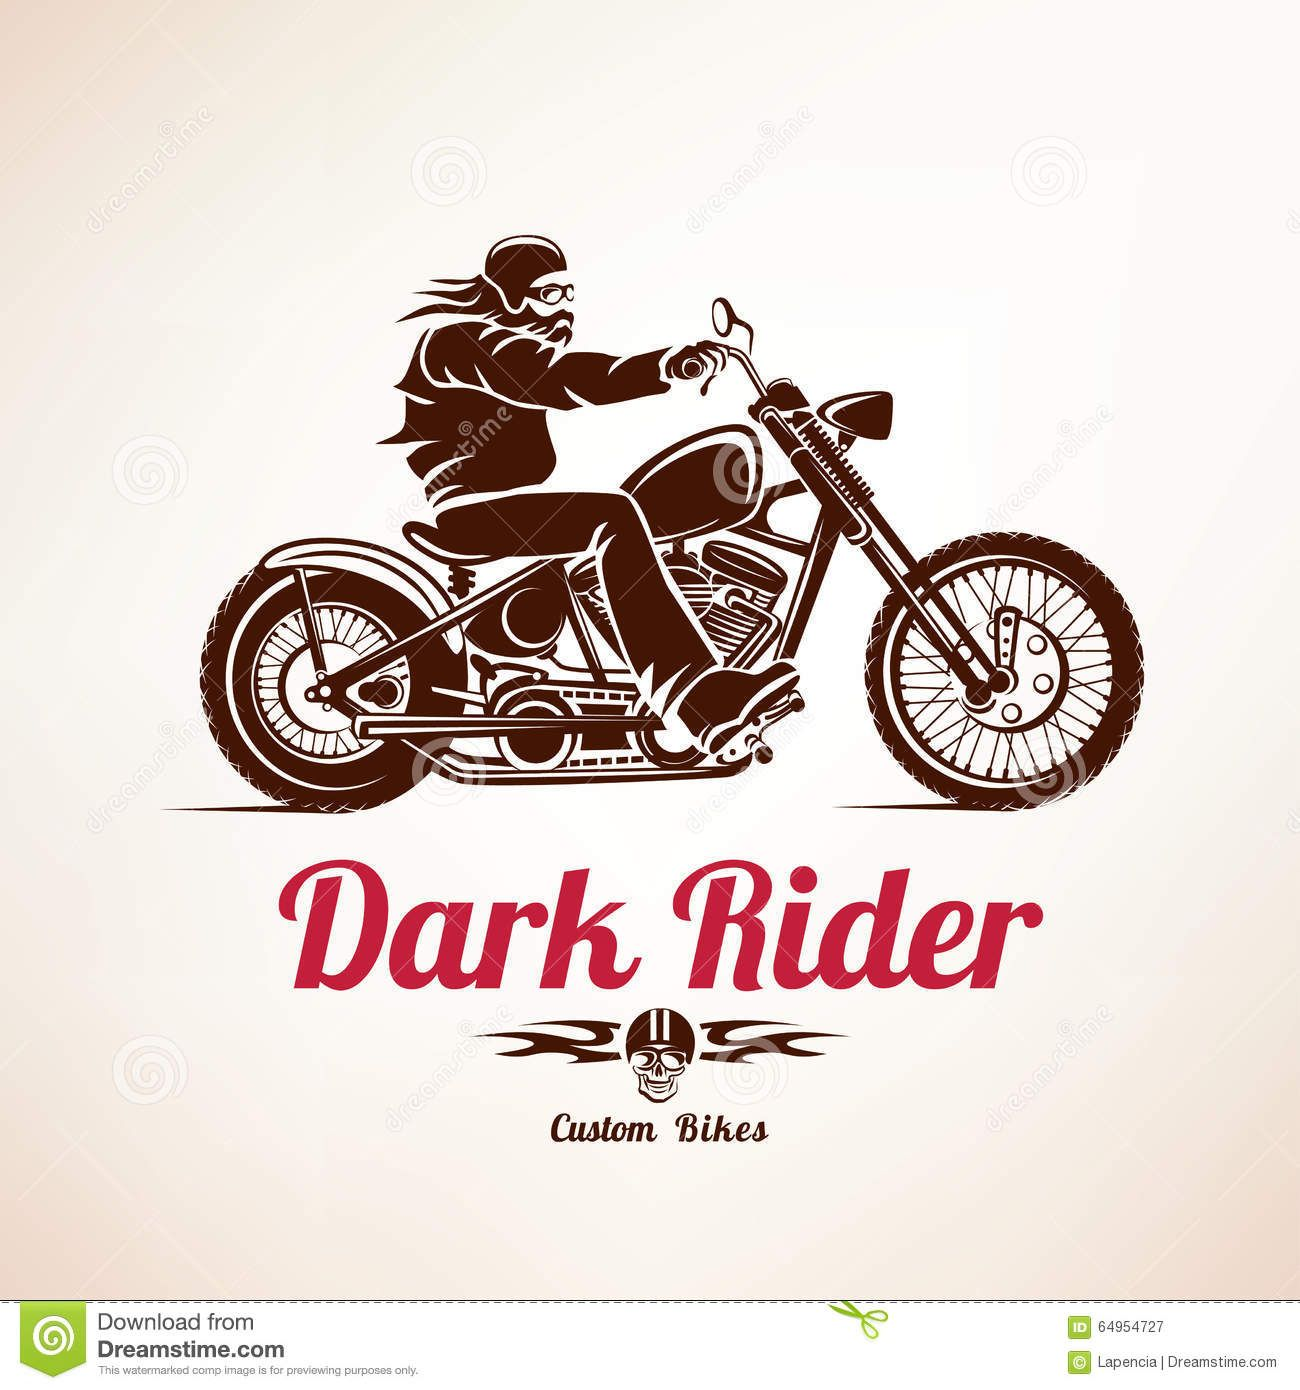 Biker Motorcycle Grunge Vector Silhouette Download From Over 57 Million High Quality Stock Photos Images Vectors Sign Up For Motocikl Vyzhiganie Kvilting